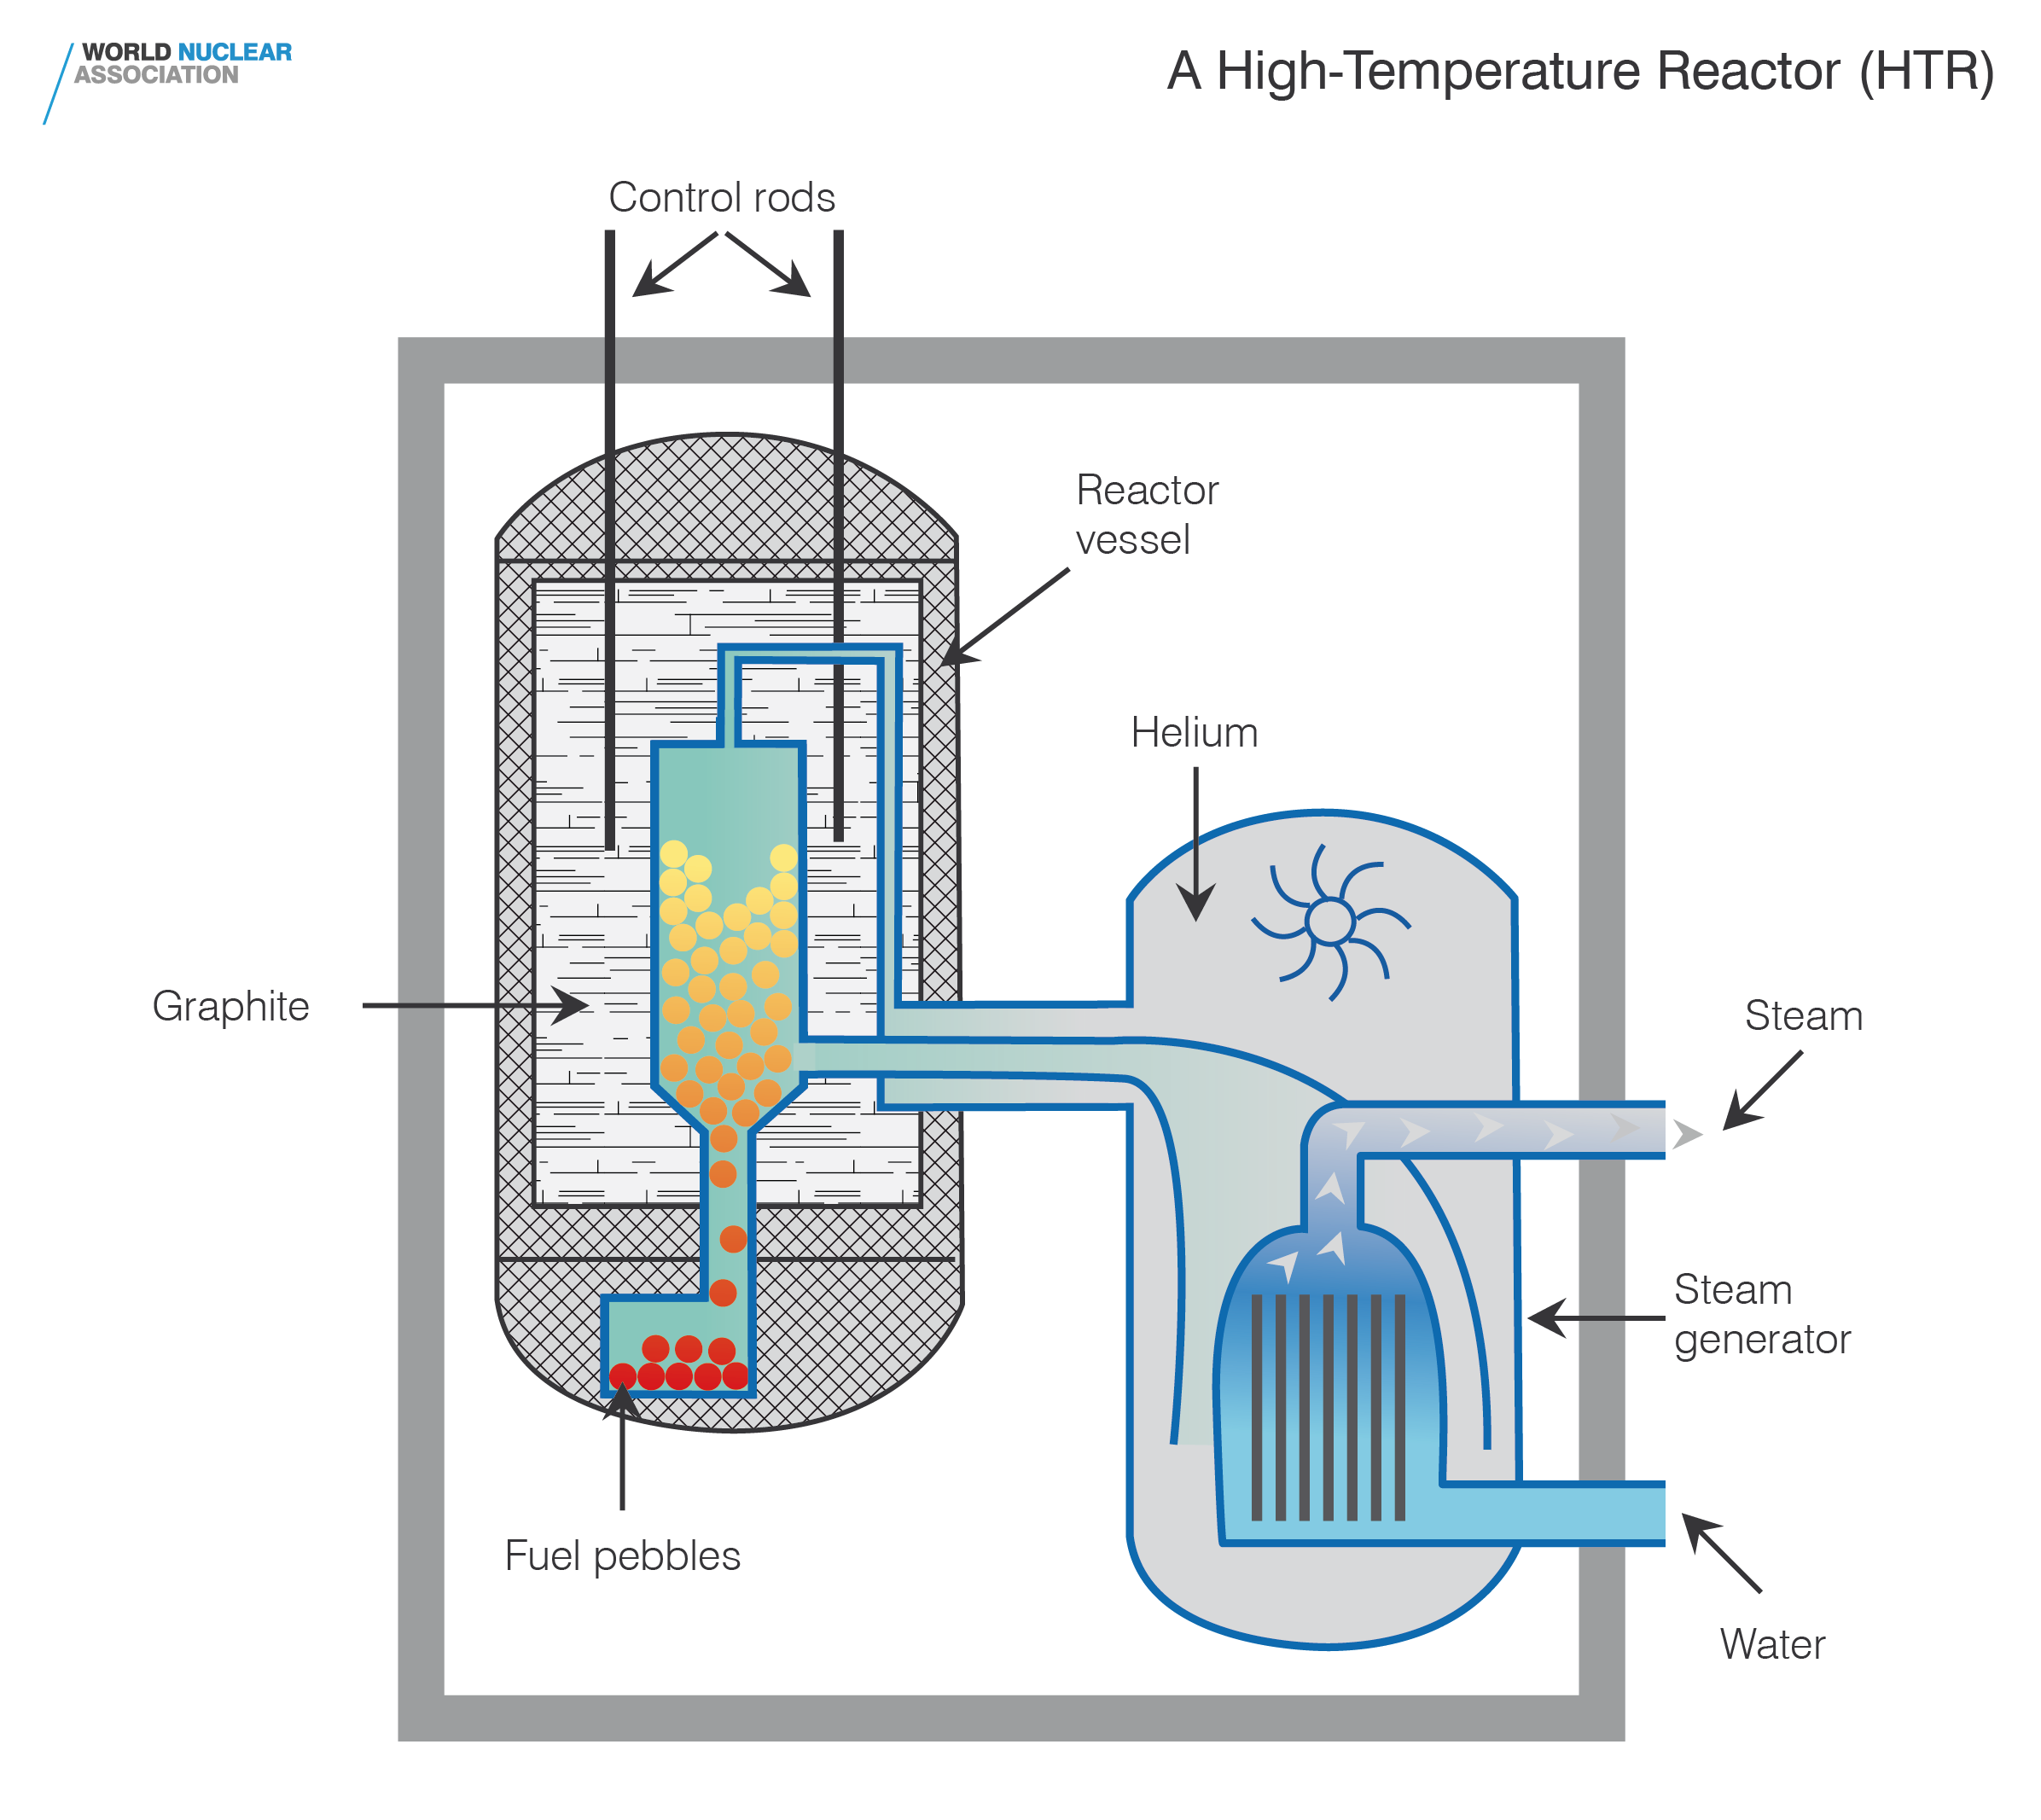 Gallery World Nuclear Association Power Plant Diagram Boiling Water Reactor High Temperature